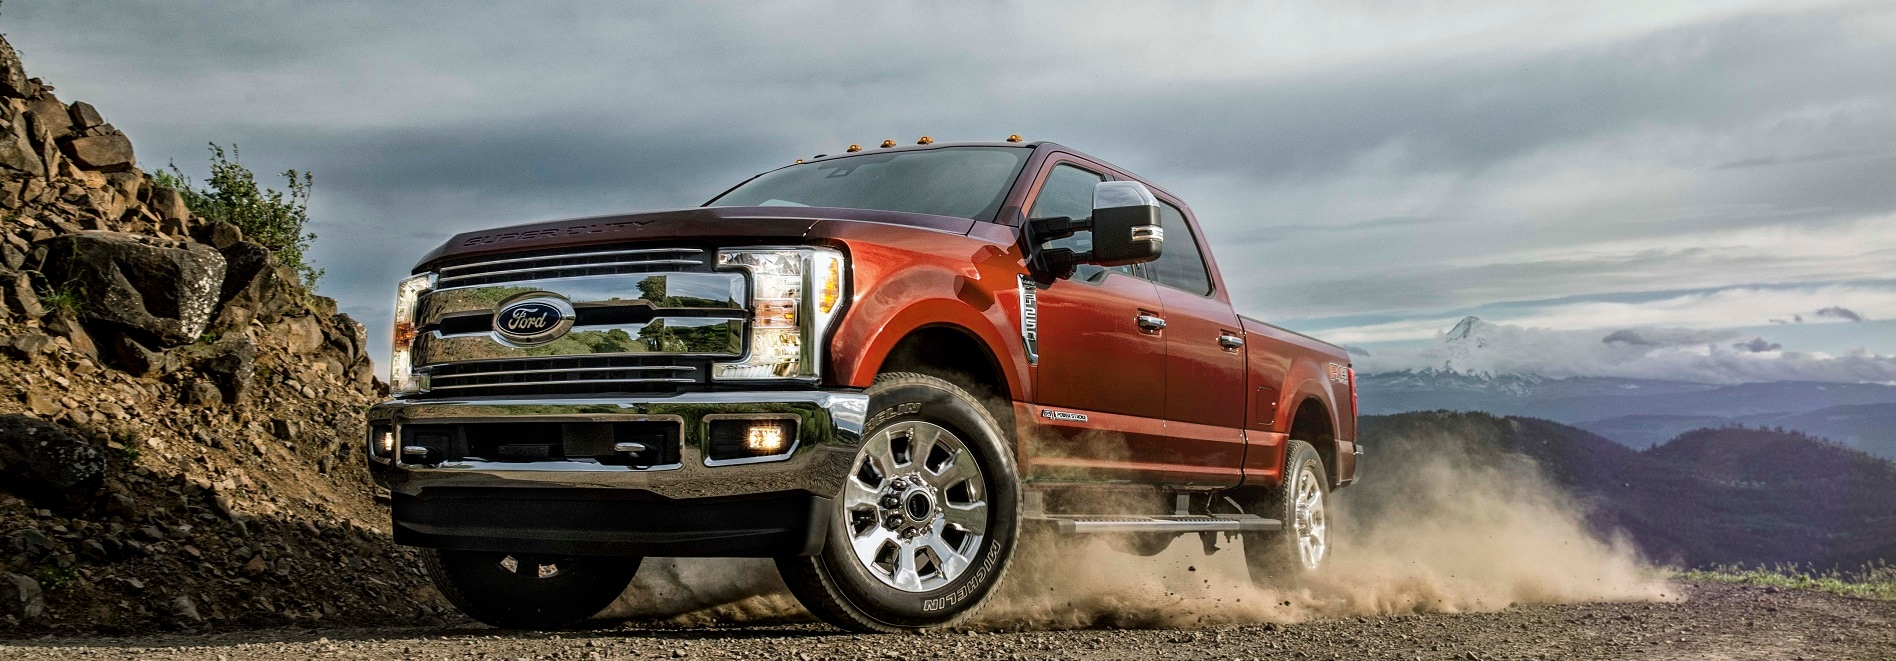 2017 Ford Super Duty Green Bay